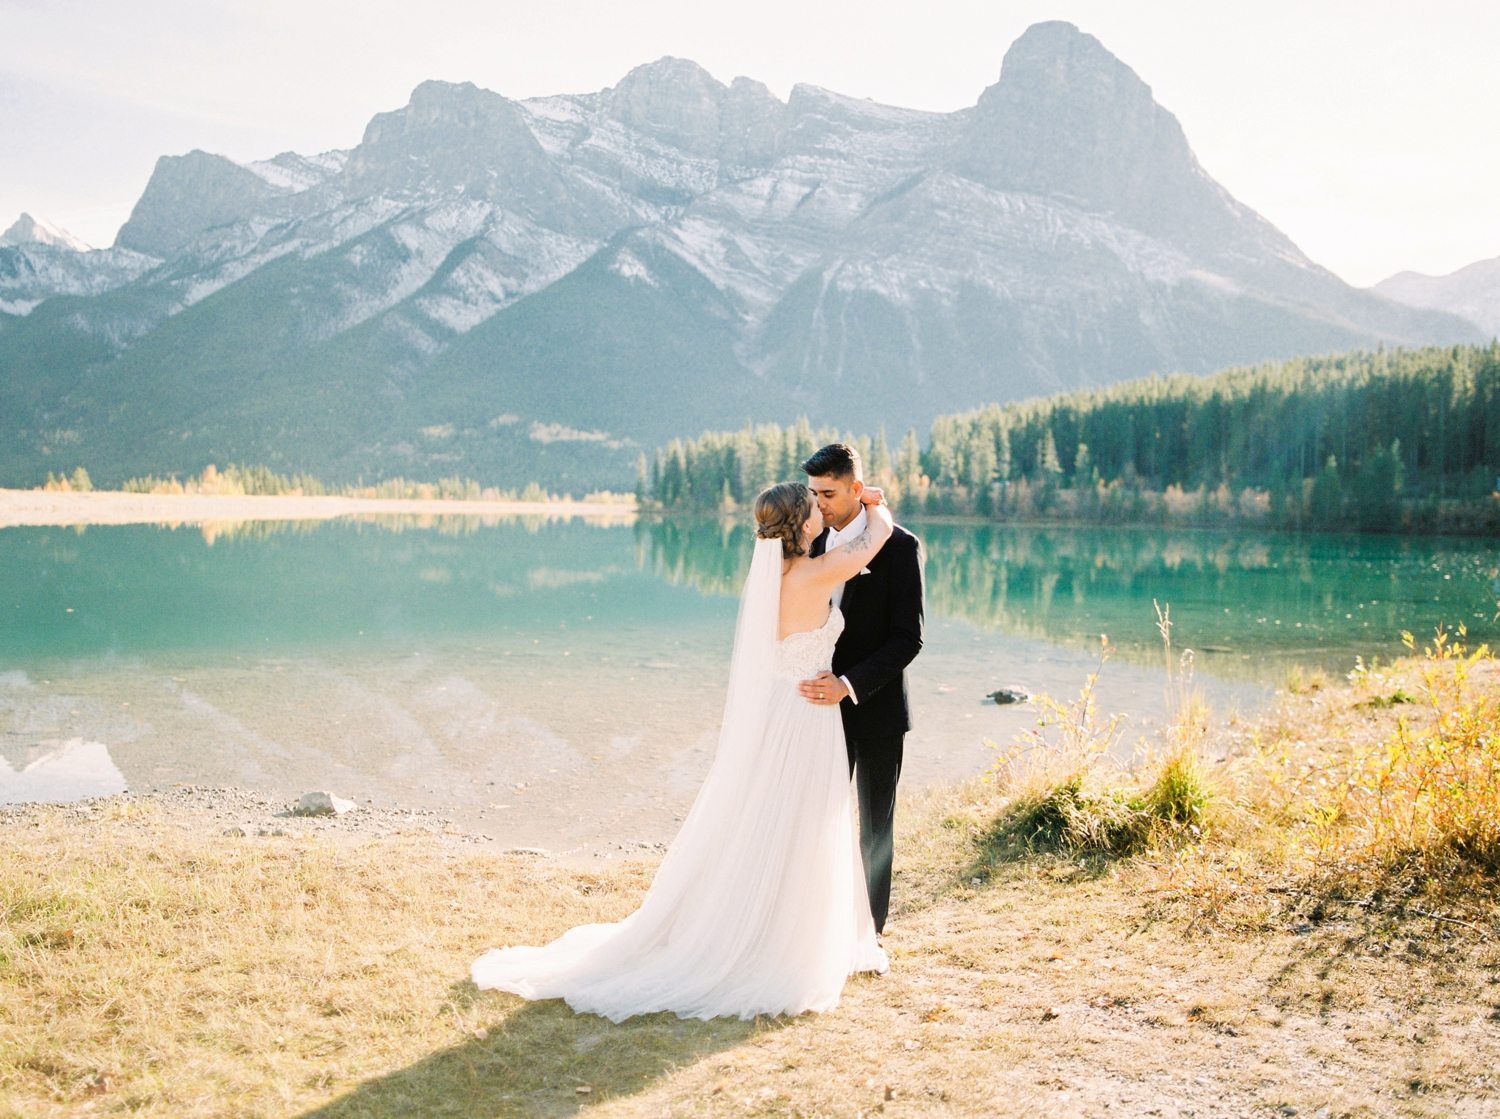 Calgary wedding photographers | fine art film | Justine Milton Photography | canmore wedding photographers | bride and groom portraits | mountain photography